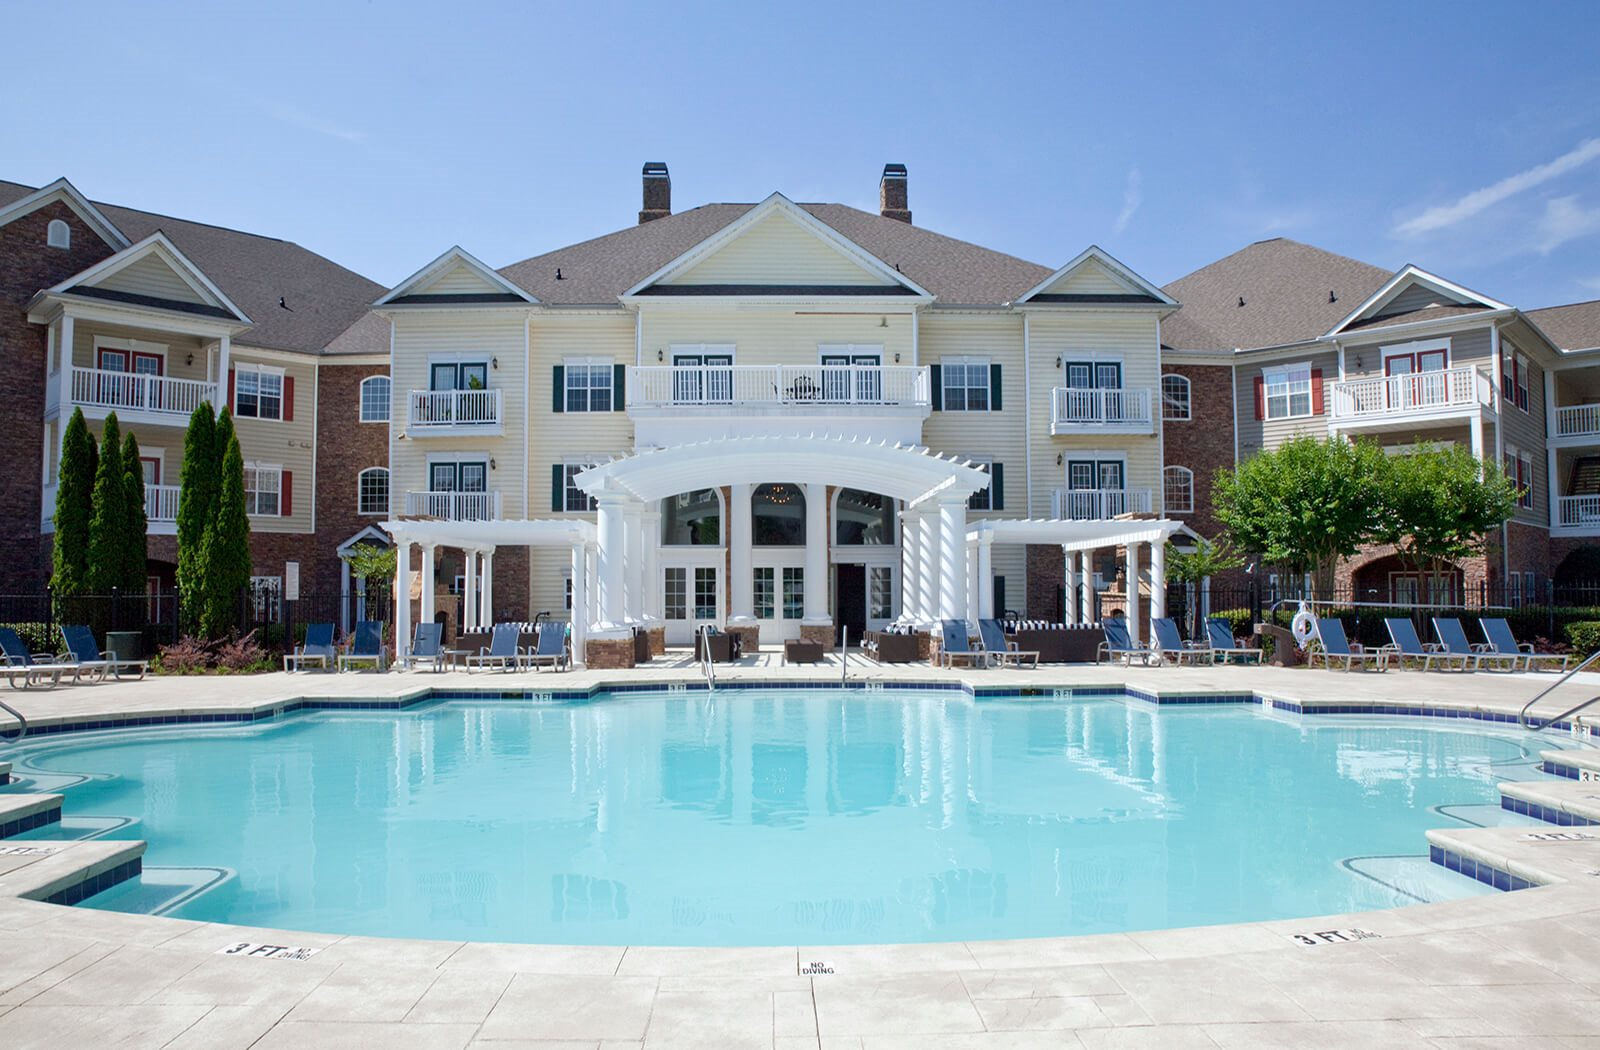 Community Clubhouse With Swimming Pool at The Estates at Johns Creek, Georgia